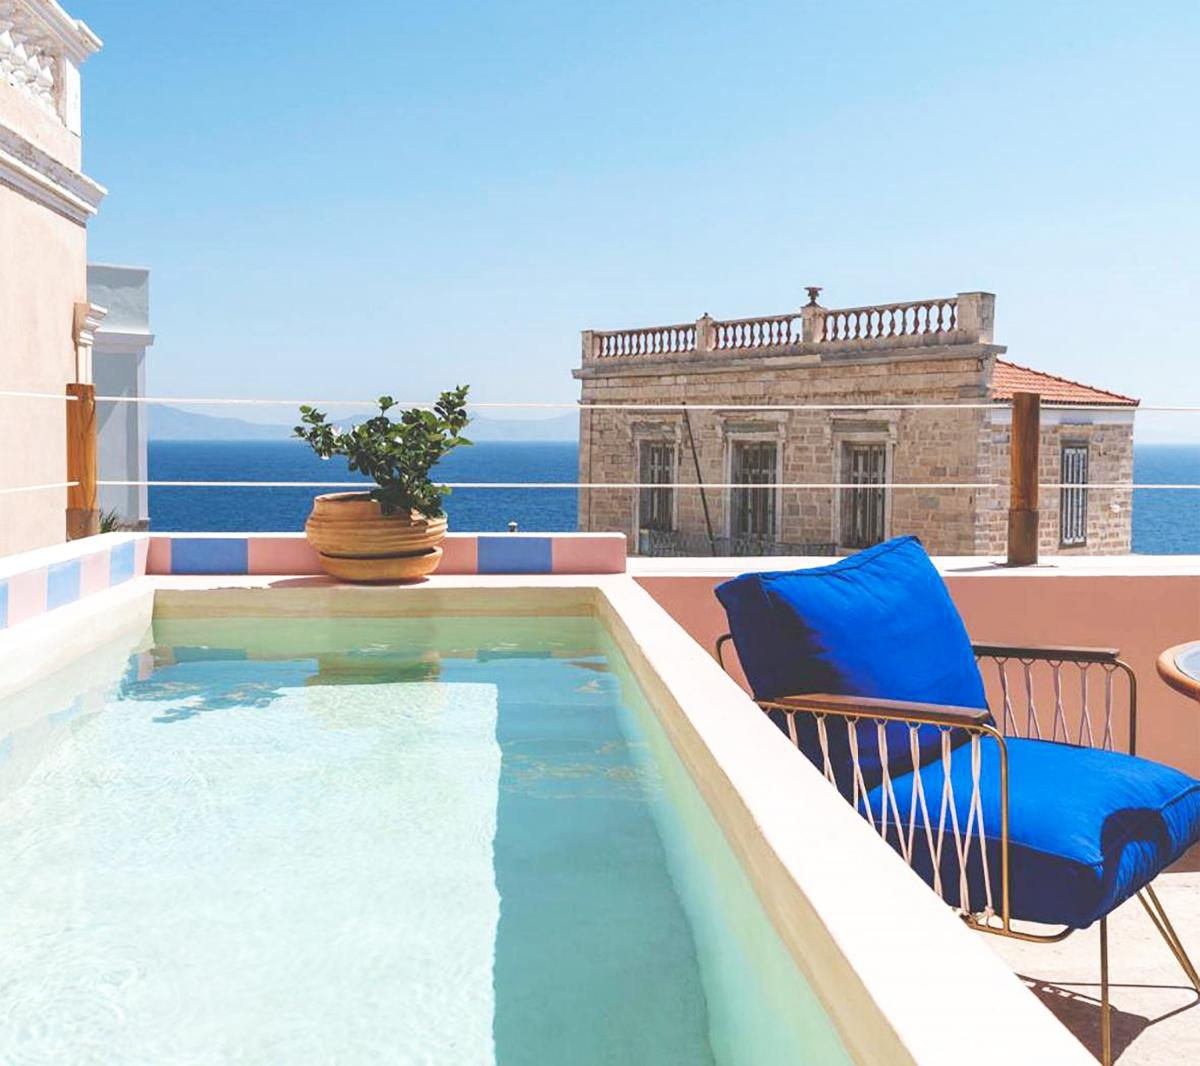 Hotel with private pool - Aristide Hotel